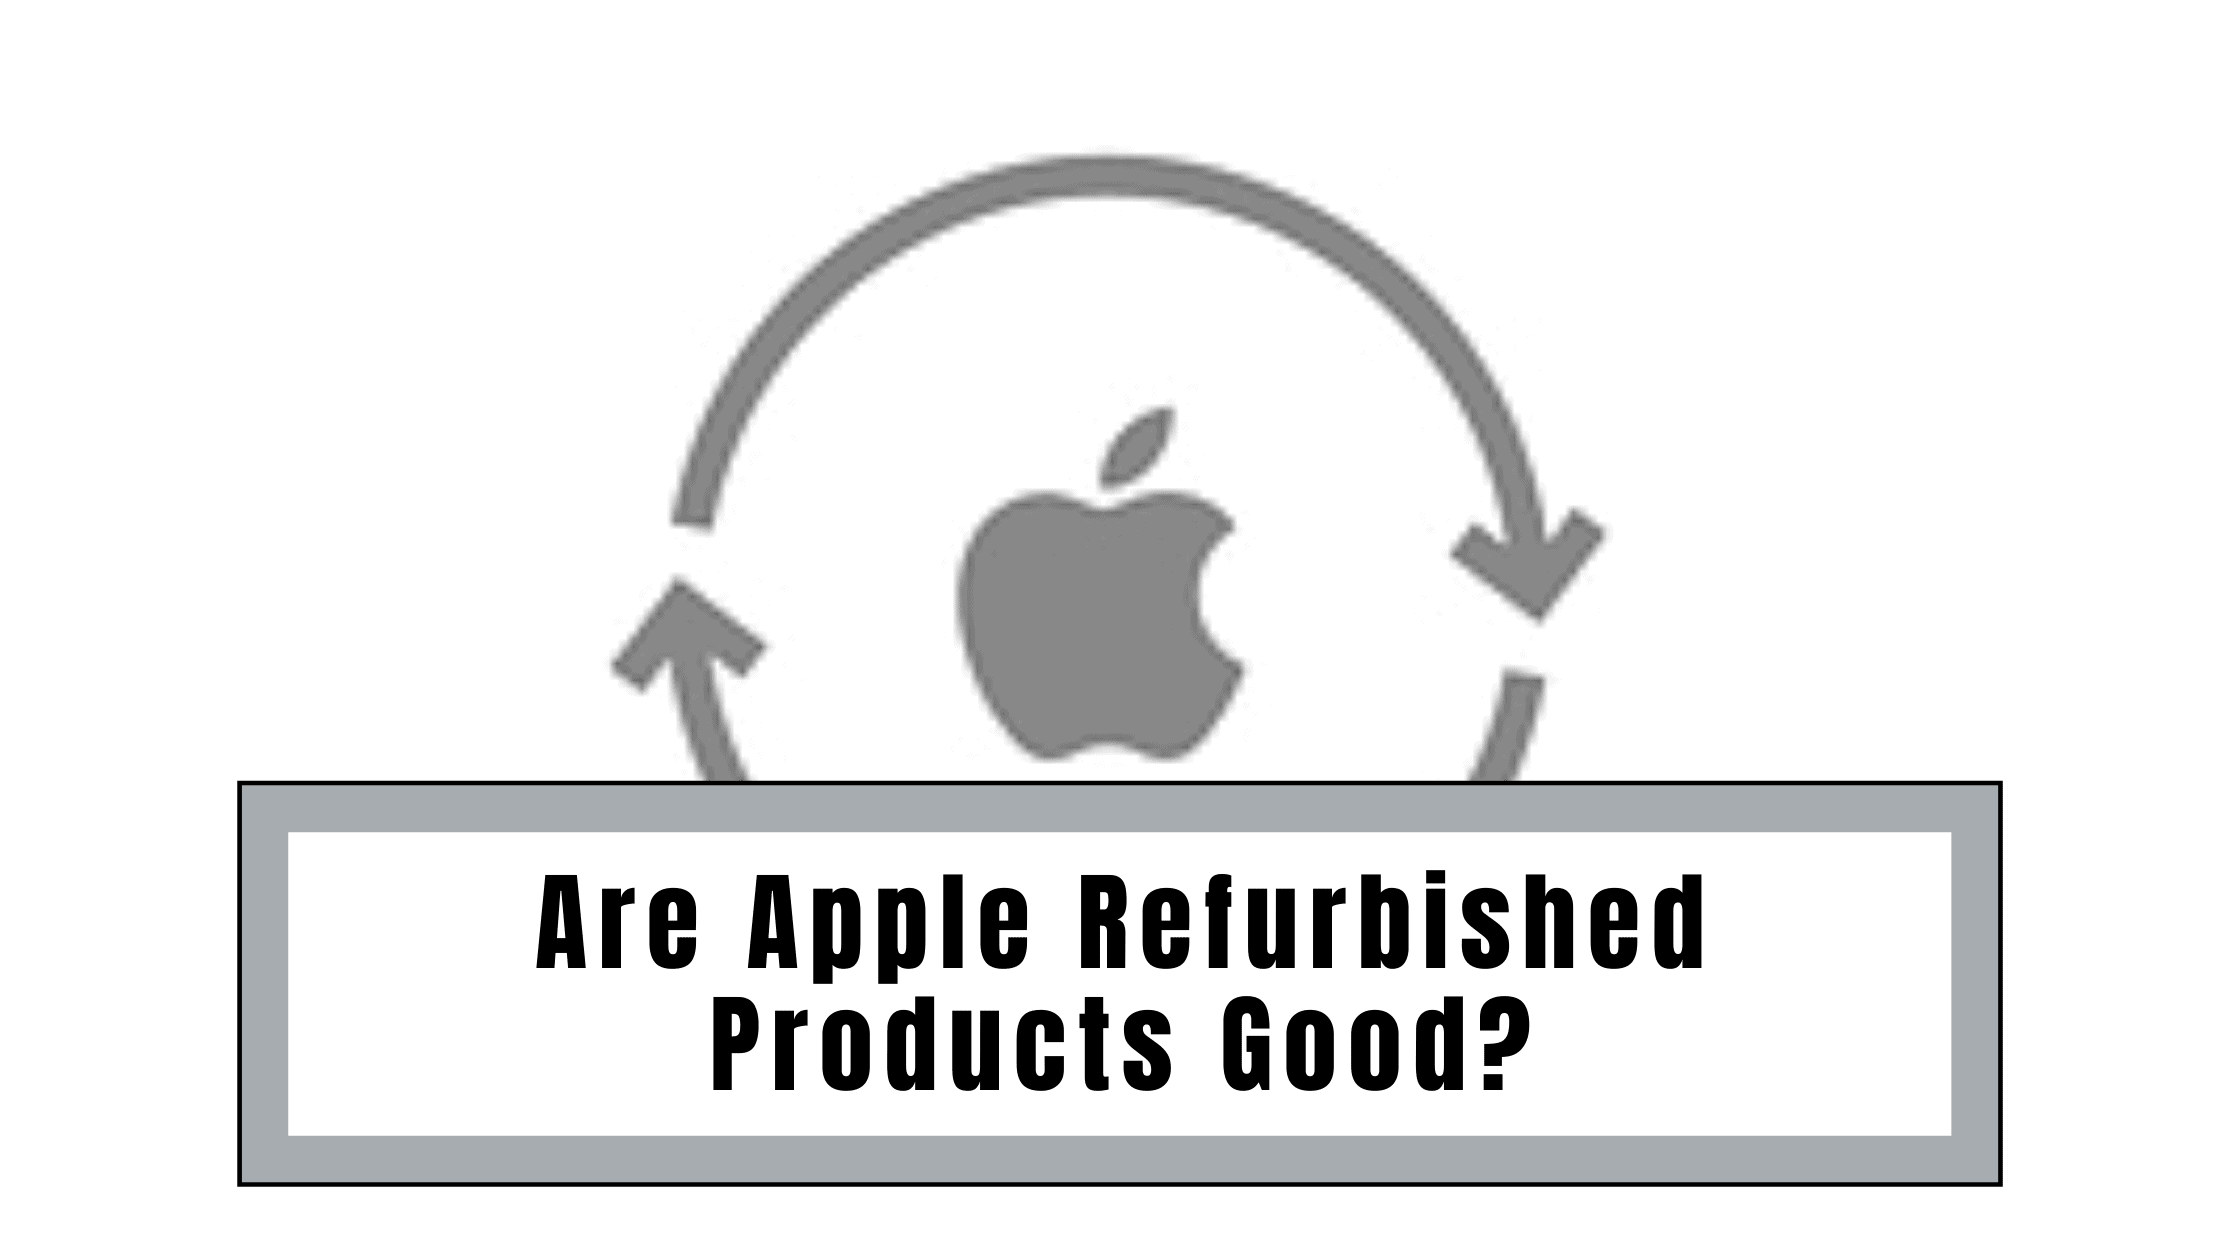 Are Apple Refurbished Products Good